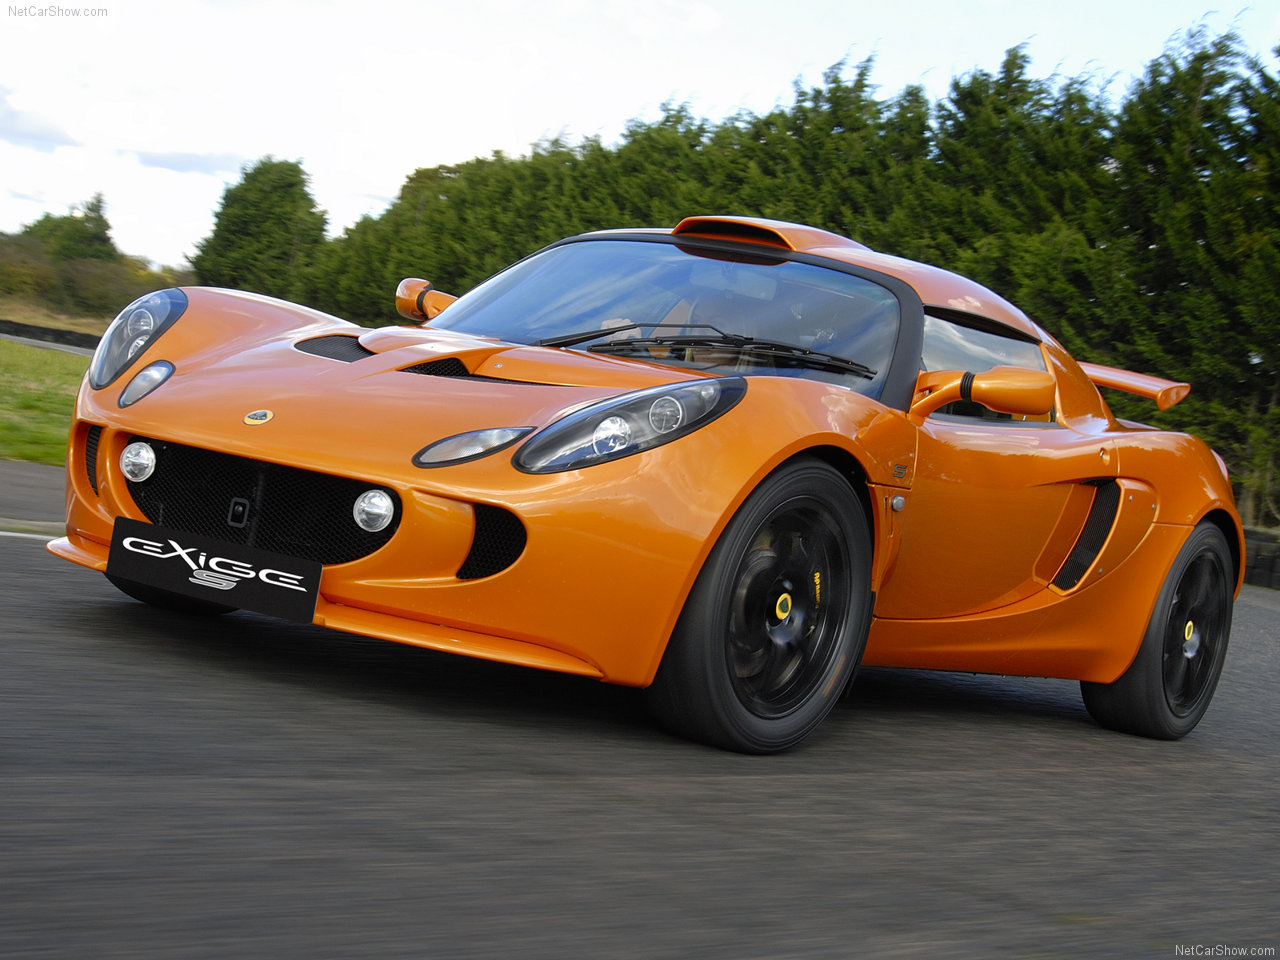 2007 Lotus Exige S Automobile